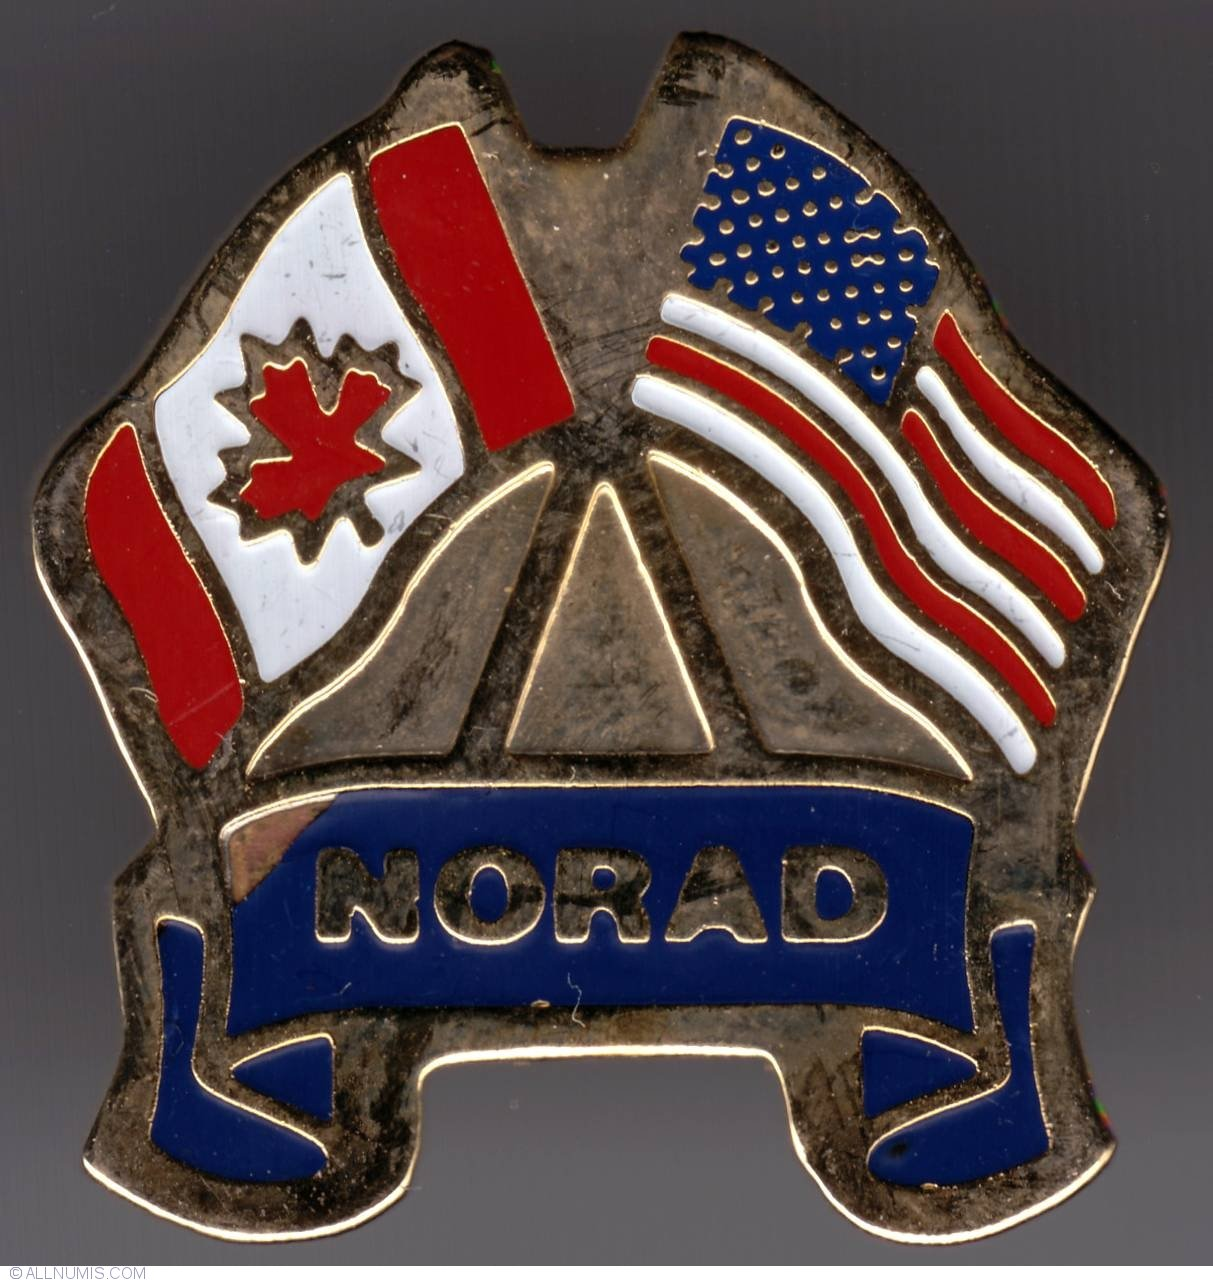 Long Past Time For Canada To Exit Norad Global Researchglobal